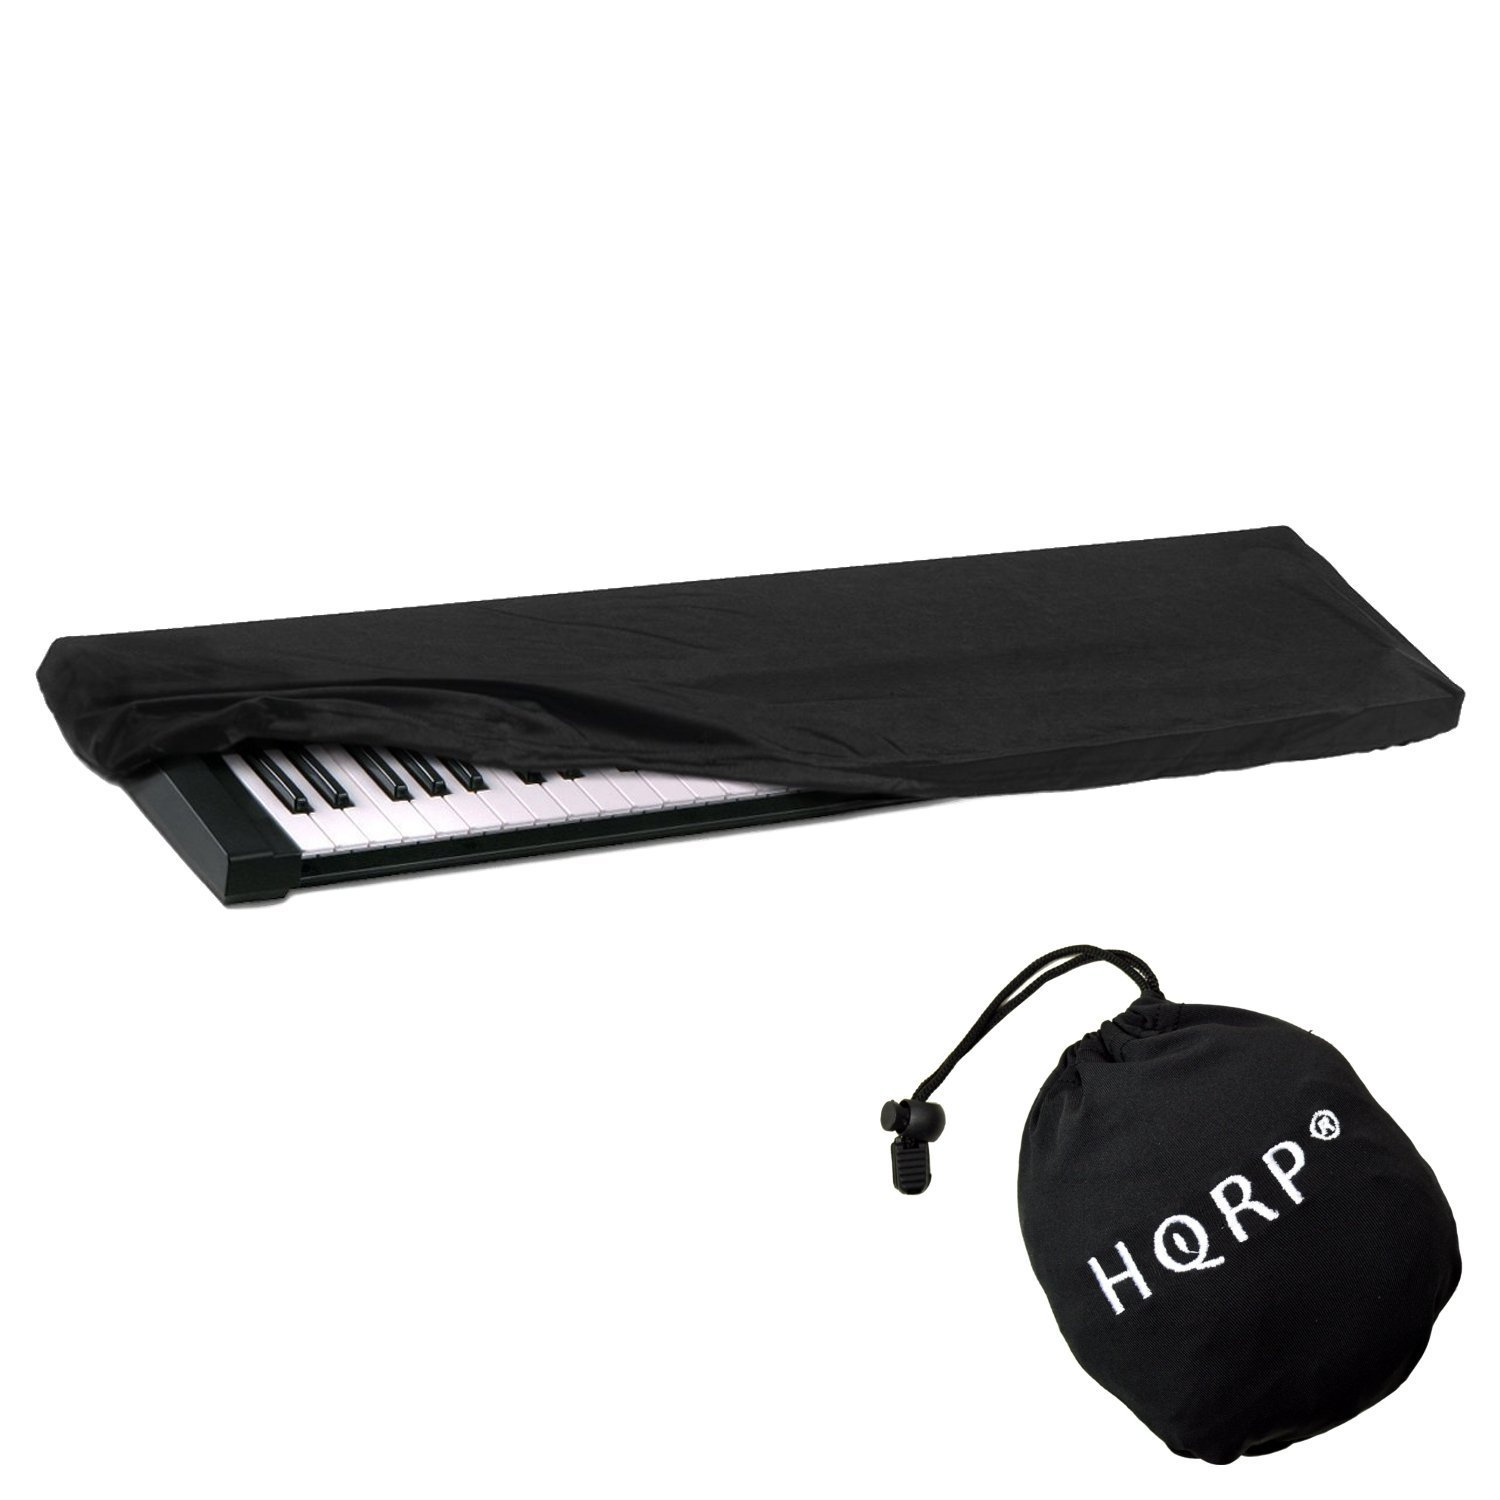 HQRP Elastic Keyboard Dust Cover for Yamaha XS-6 XS-7 XS-8 YNP-25 YPT-200 YPT-210 YPT-300 YPT-330 YPT-400 Digital Piano Synthesizer + HQRP Coaster 887774411211572